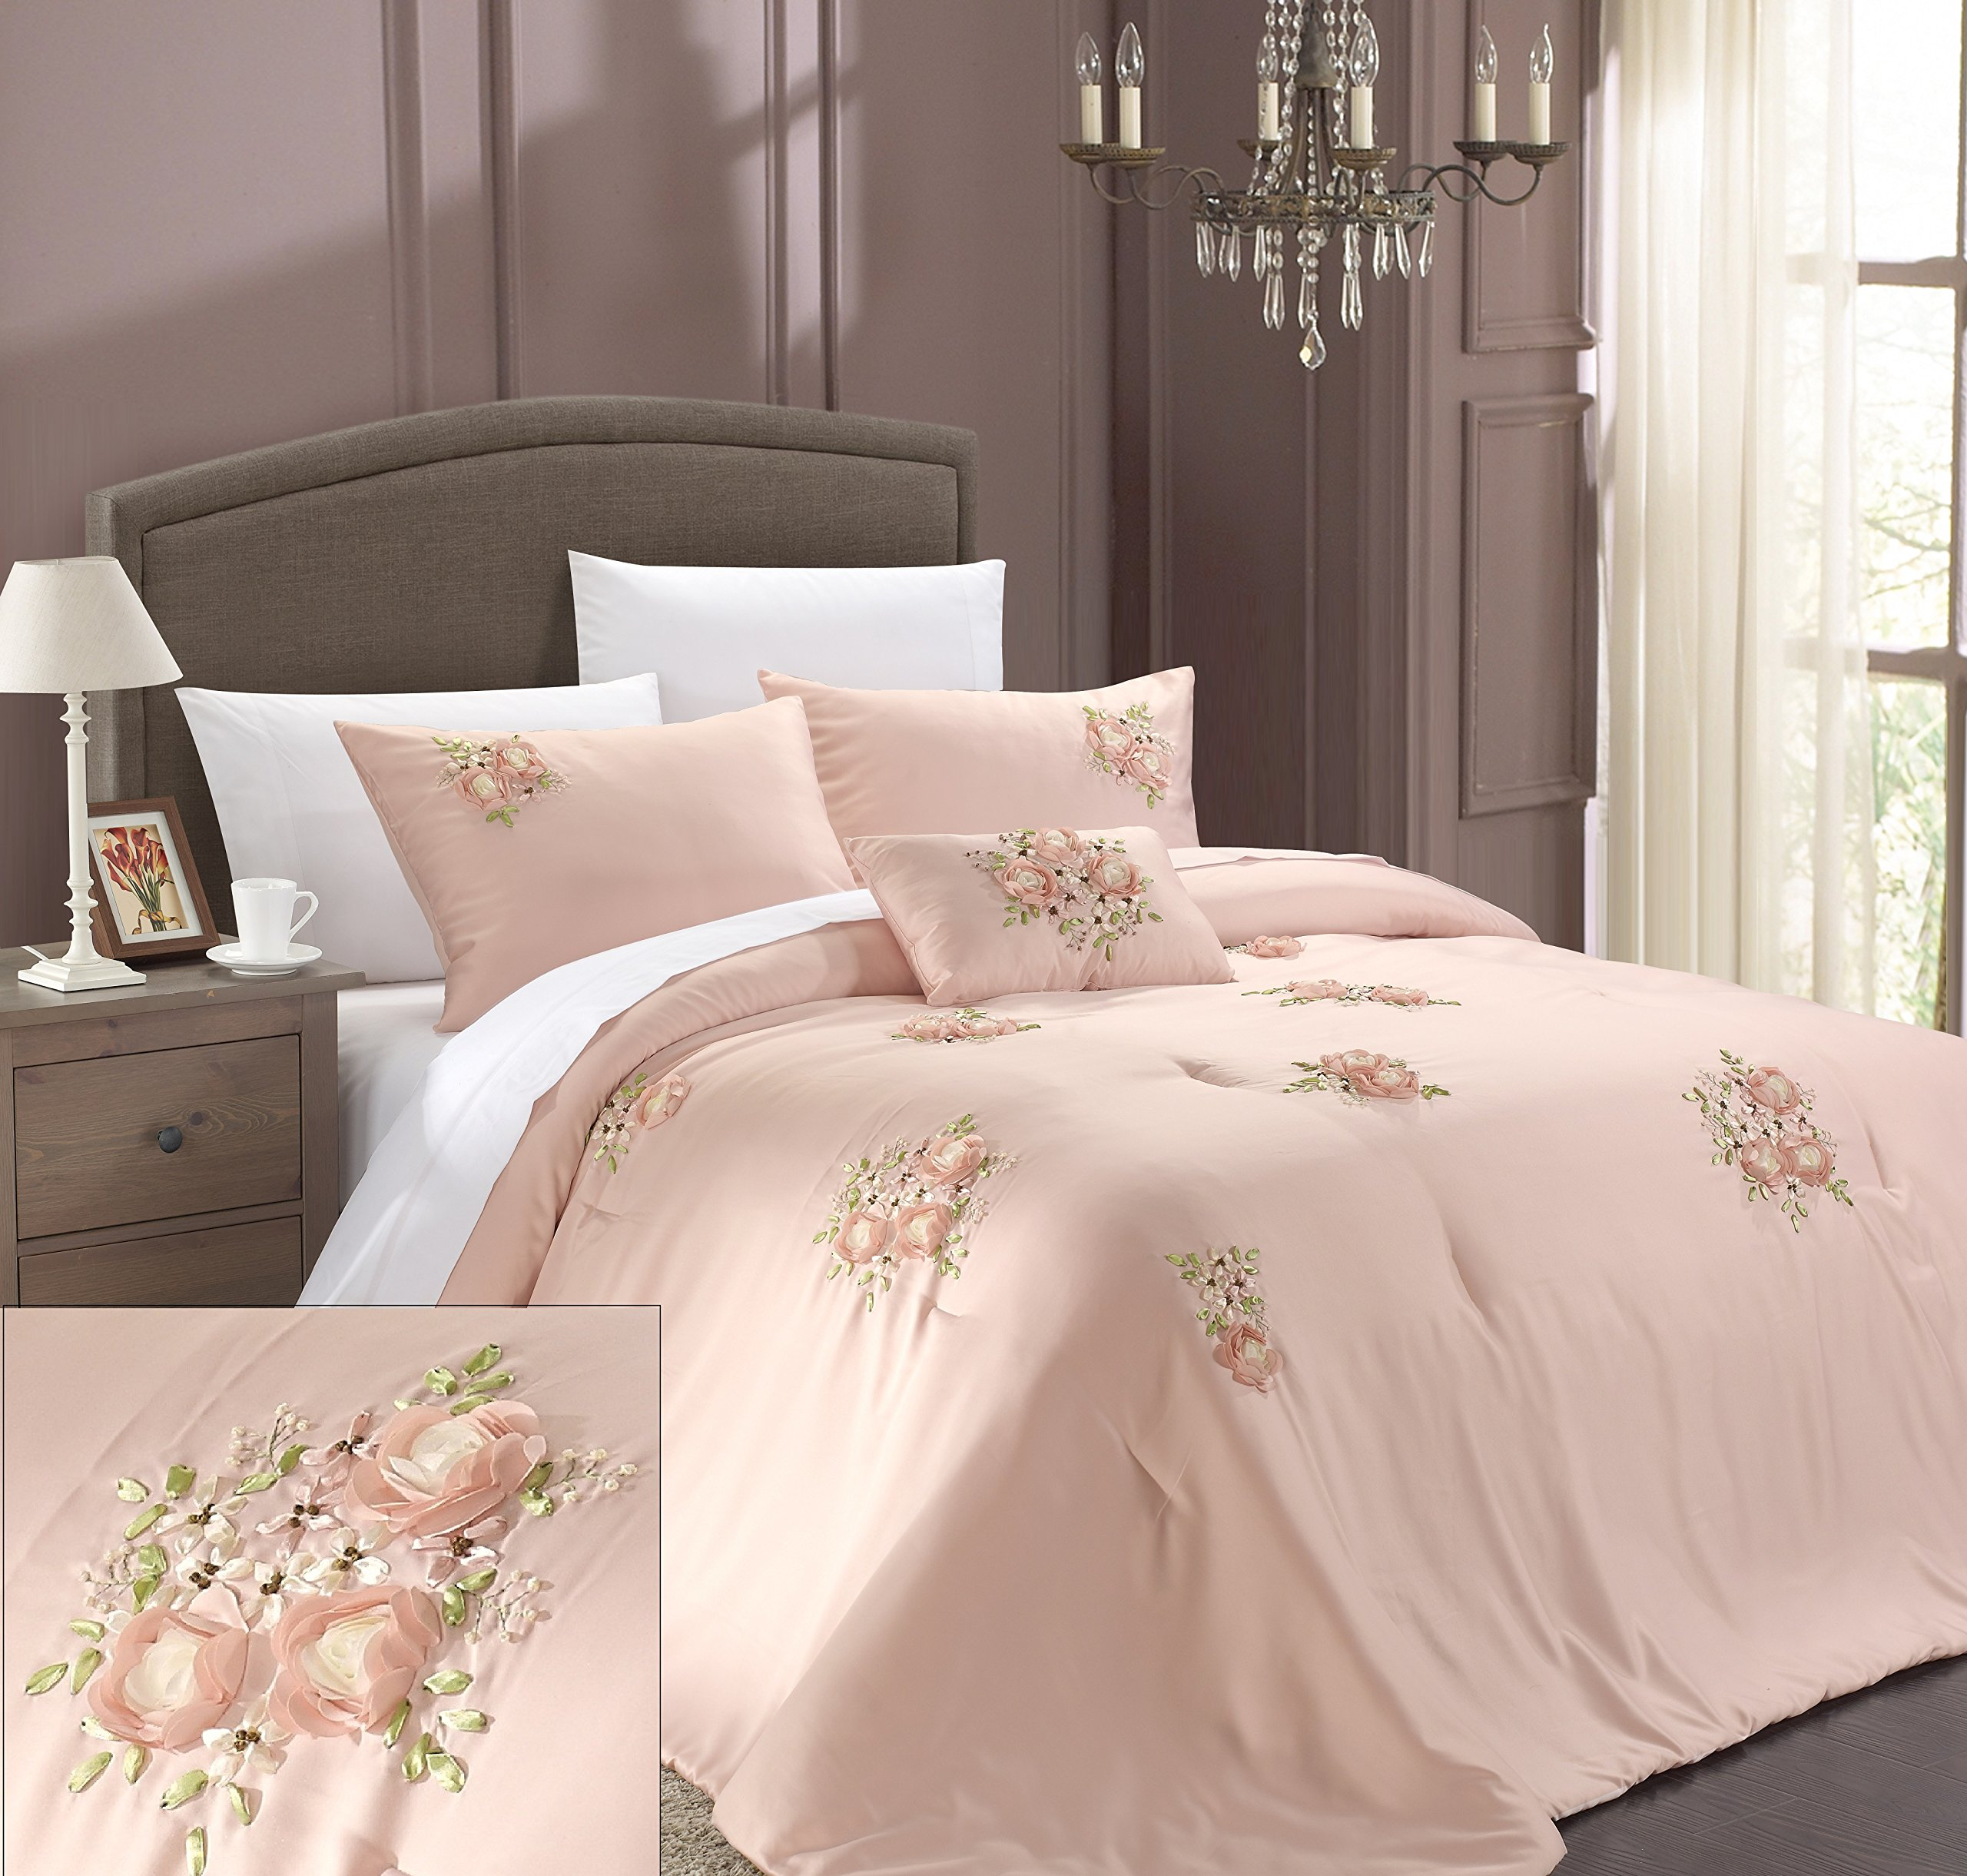 gold sets blue browning cream set comforter black with size bedding quilt comforters decoration comfo queen king blush and pink twin bed camo colored coral